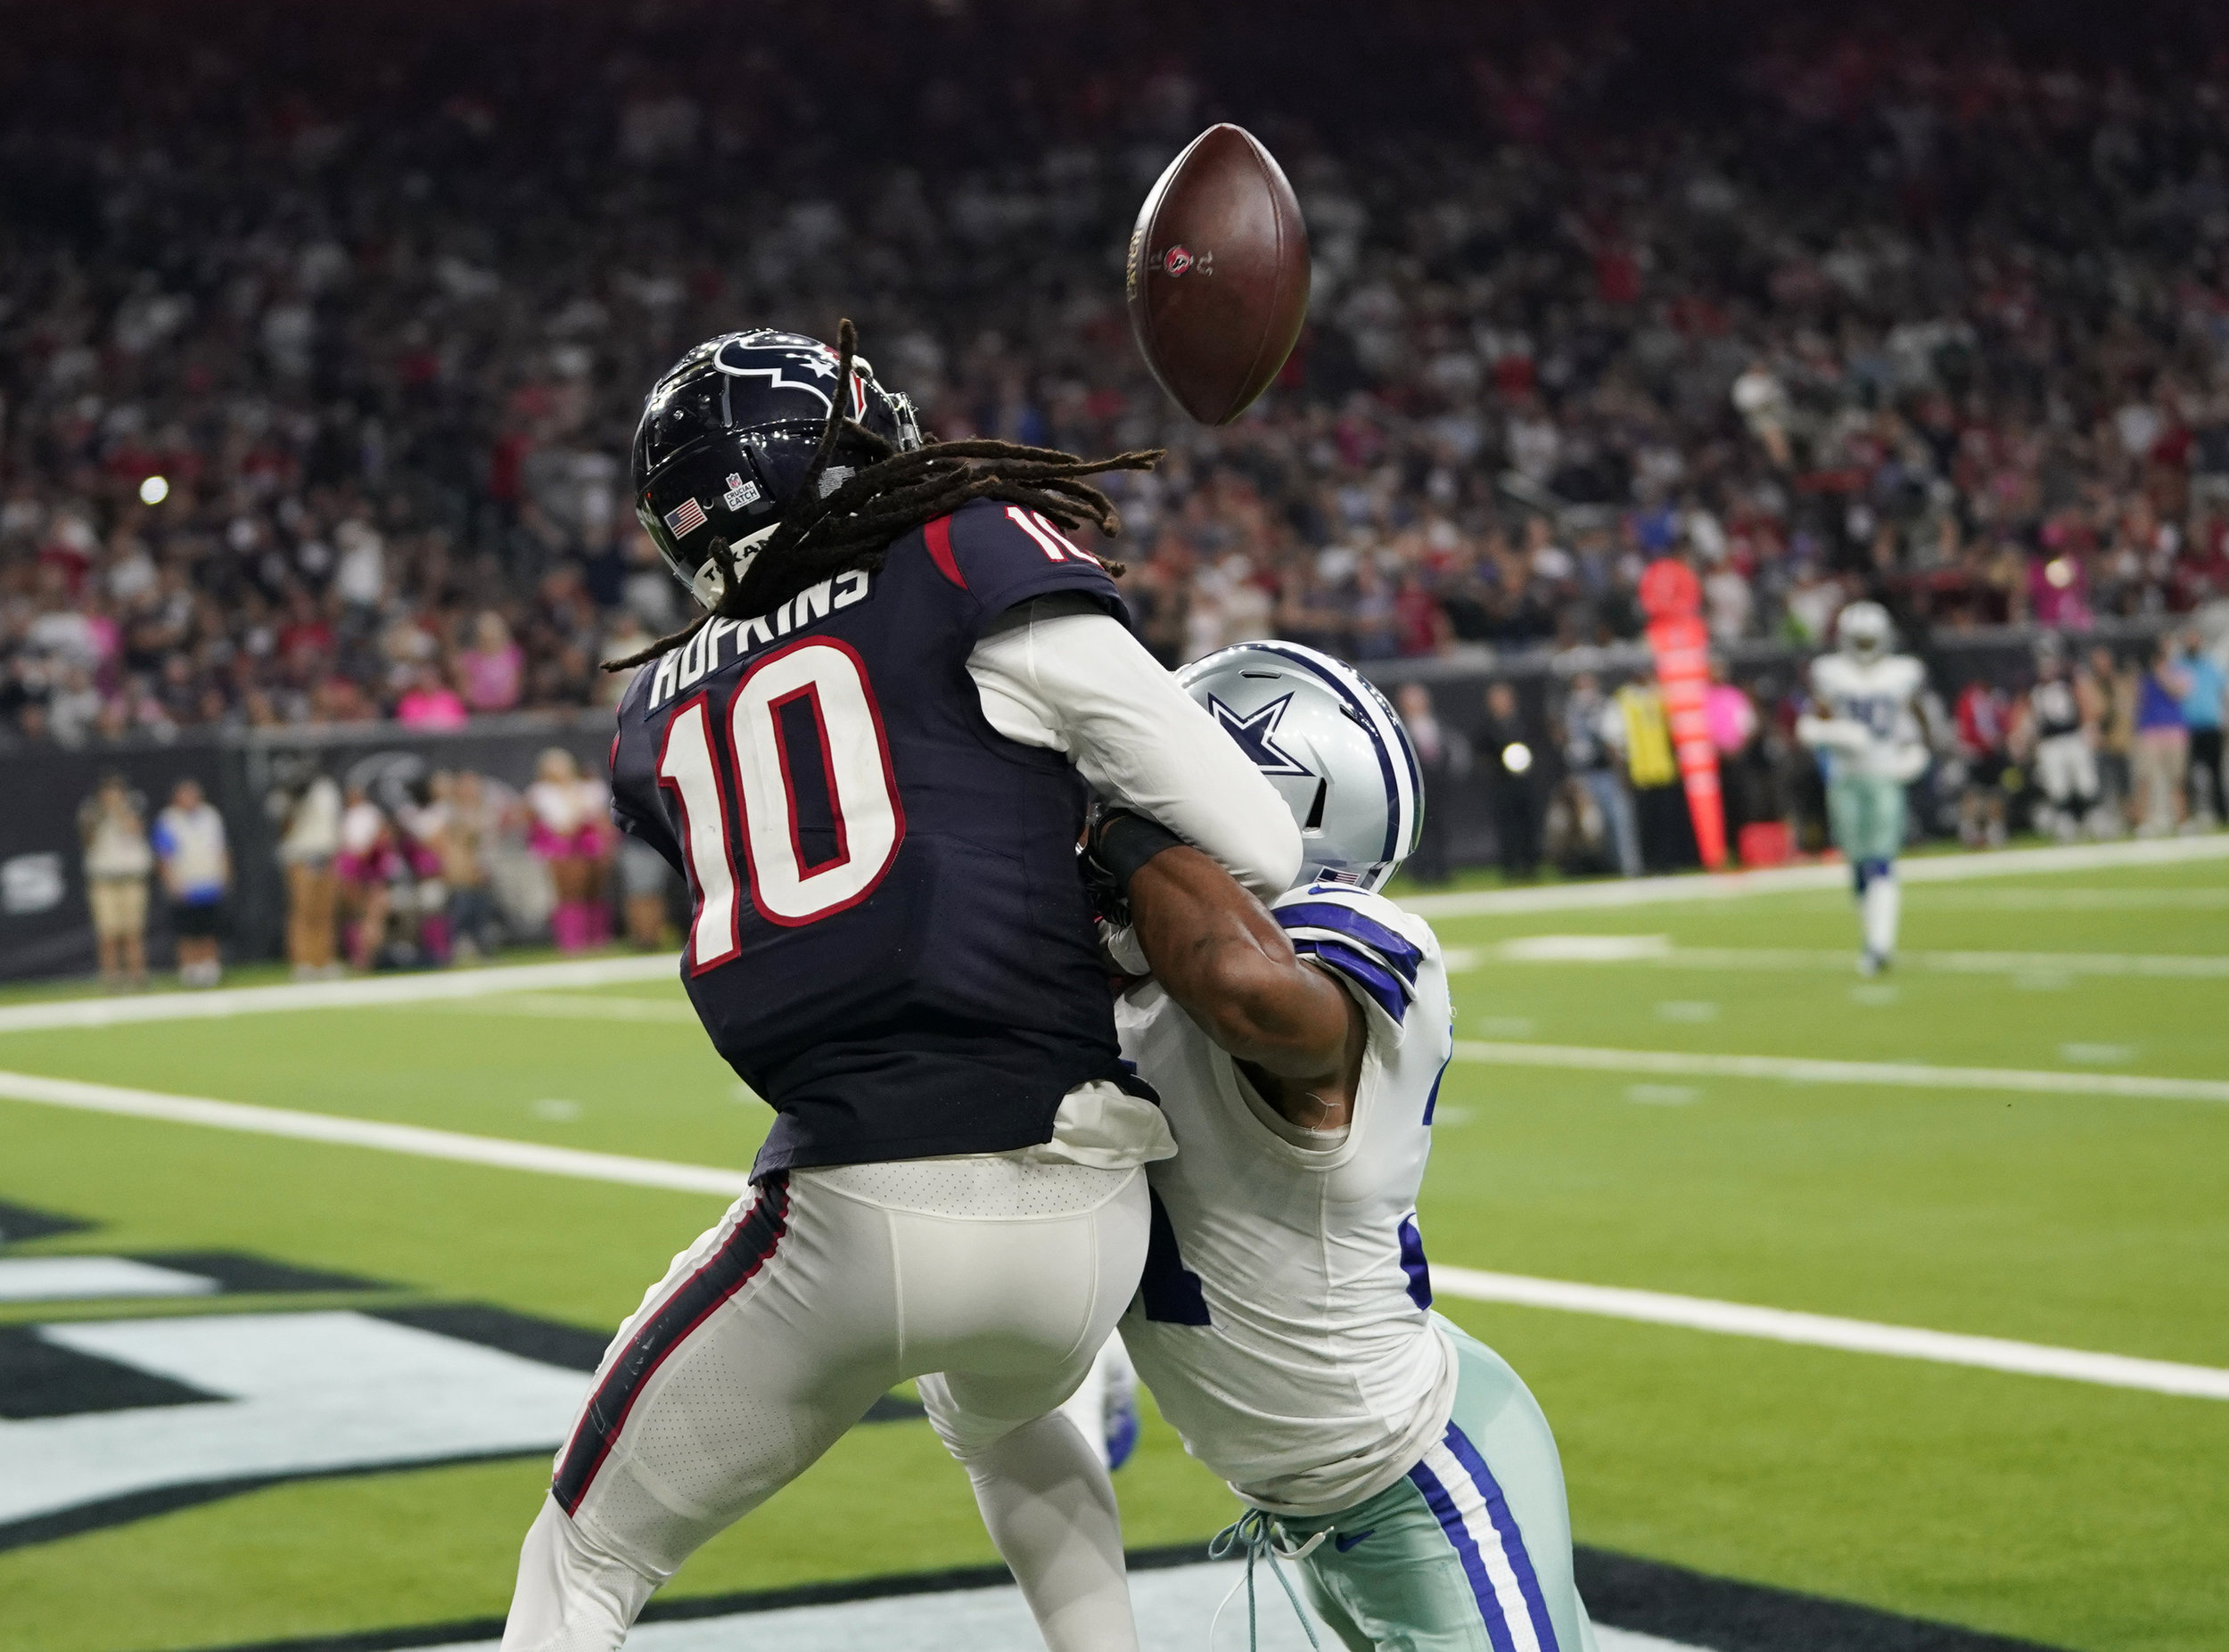 Byron Jones, right, breaks up a pass in the end zone intended for Houston Texans wide receiver DeAndre Hopkins (10) a game, Sunday, Oct. 7, 2018, in Houston. (AP Photo/David J. Phillip)